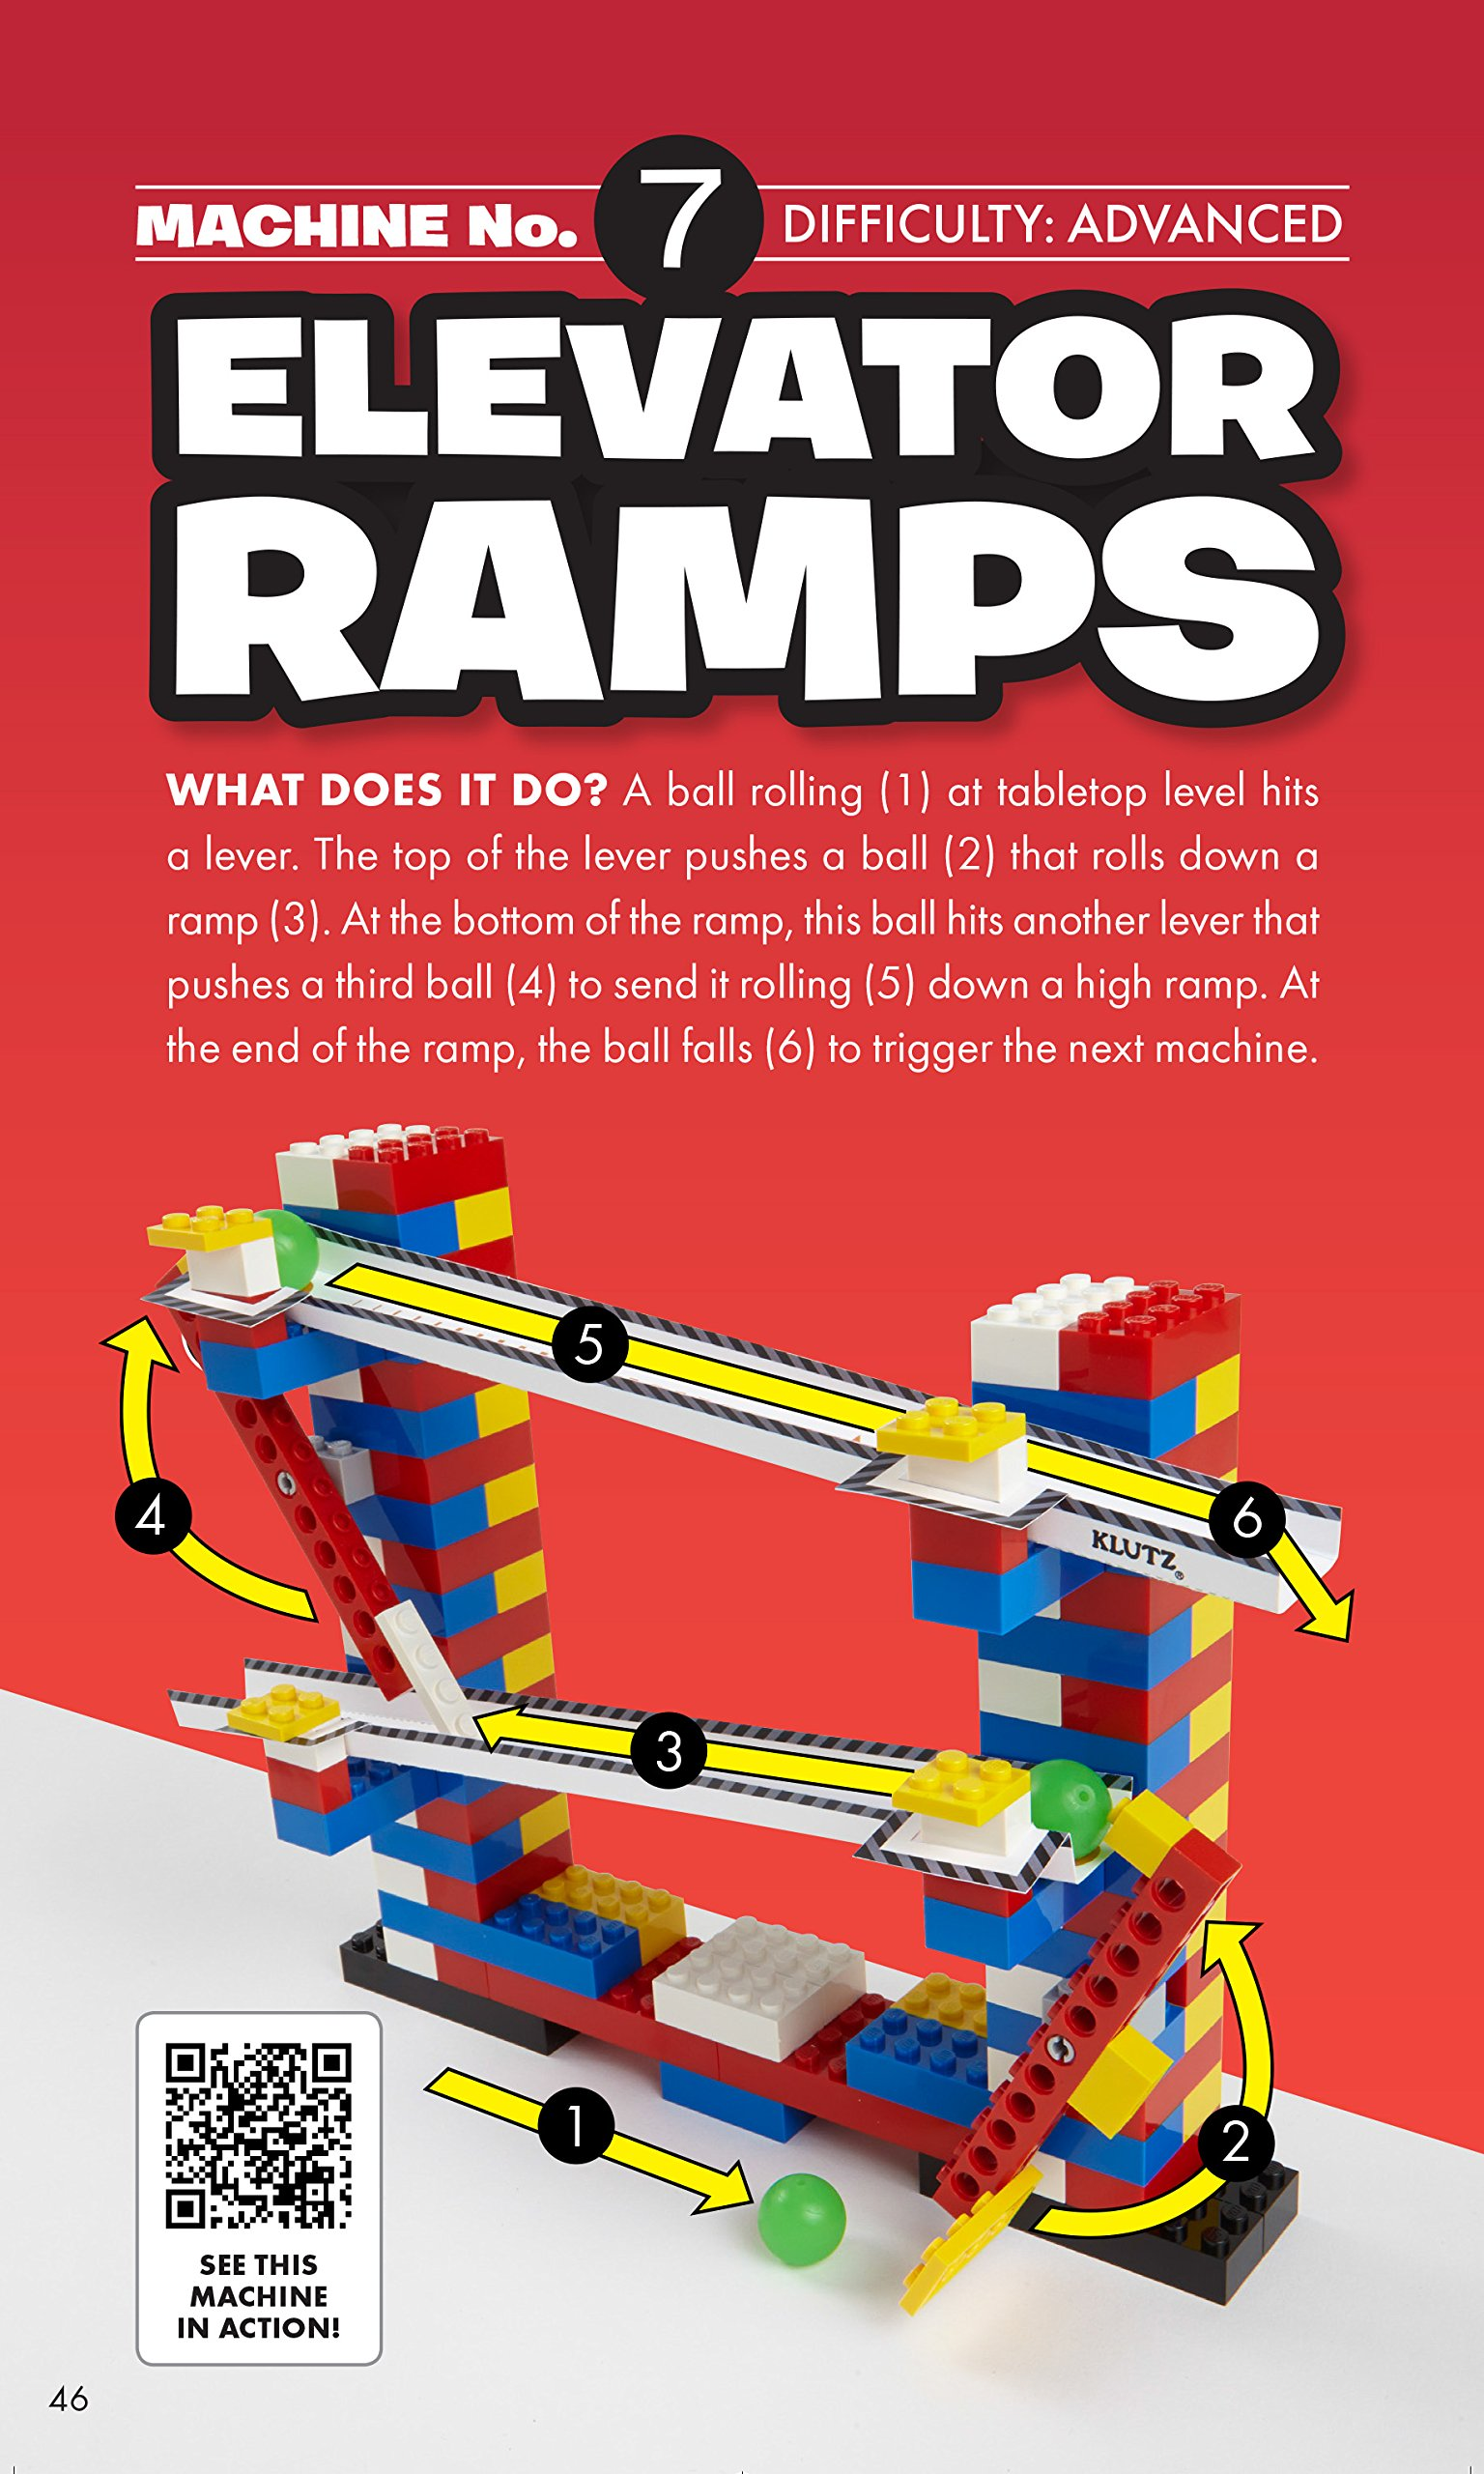 Lego Chain Reactions Make Amazing Moving Machines Klutz Snap Circuits Sound Light Combo By Elenco On Barstons Childs Play Books